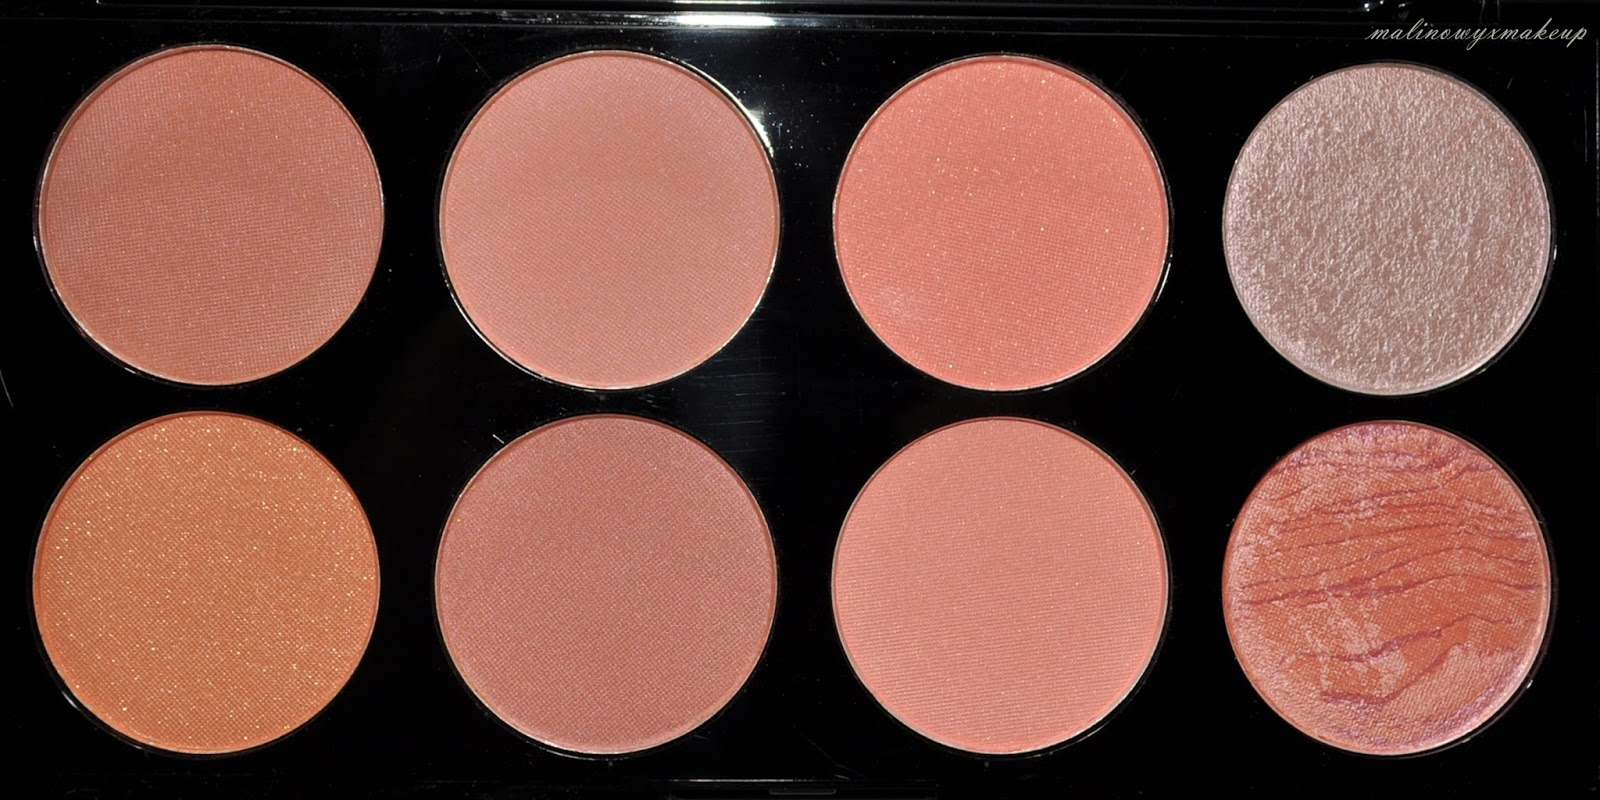 blush palette paleta róży hot spice makeup revolution mur